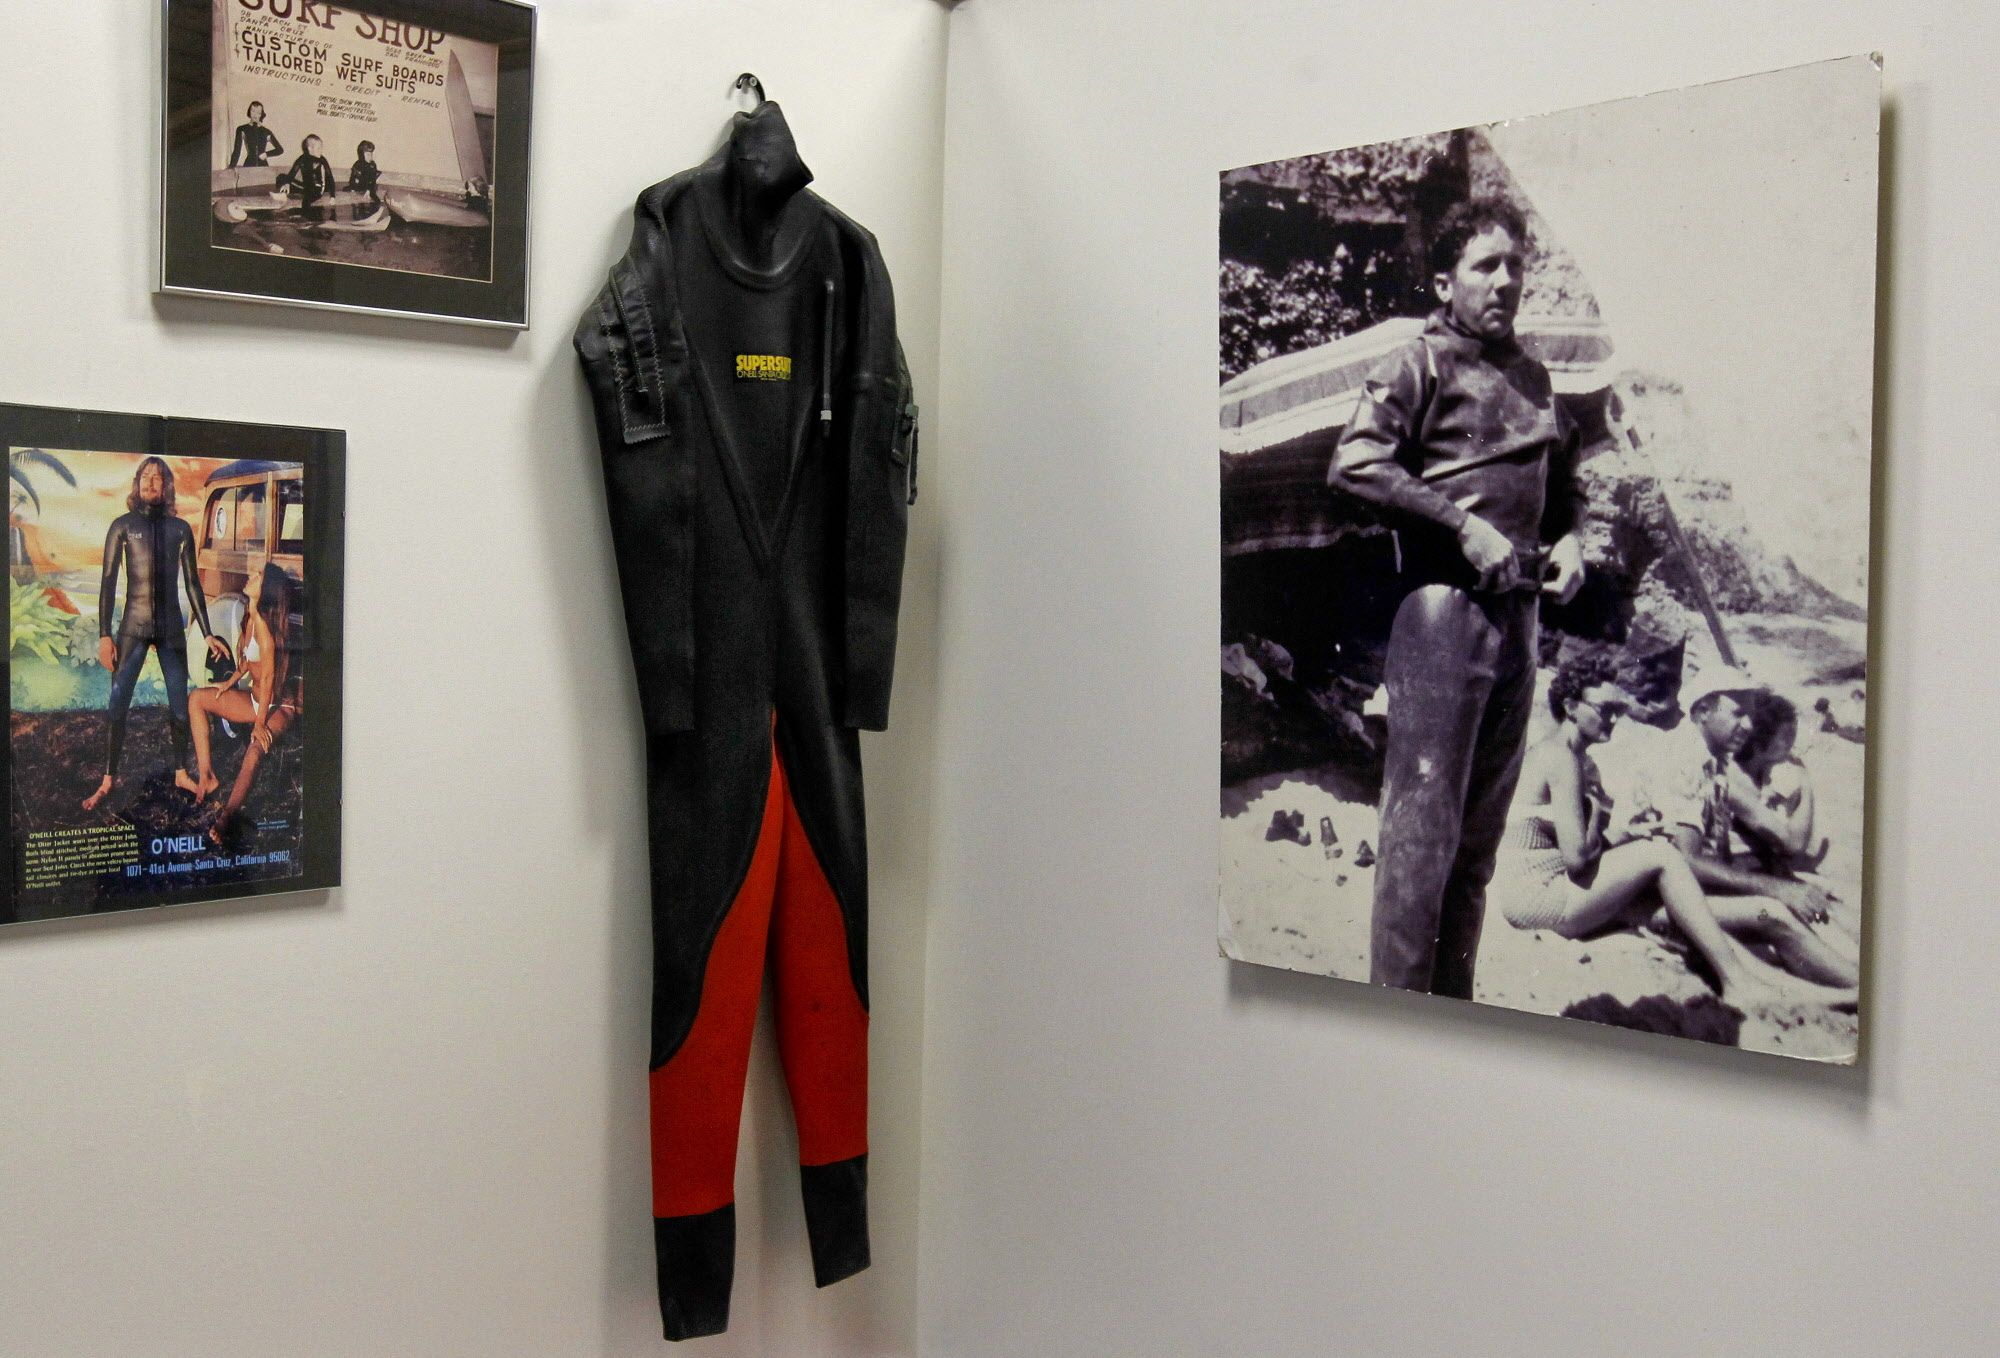 O'Neill's Surf Shop, in Santa Cruz, Ca., on Thursday April 26, 2012, displays vintage products and a photo of Jack O'Neill in a dry suit,  as they celebrate their 60th anniversary. 89-year-old, Jack O'Neill a surf industry pioneer, who invented the wet suit, is celebrating 60 years since he opened the world's first surf shop, in San Francisco in 1952.